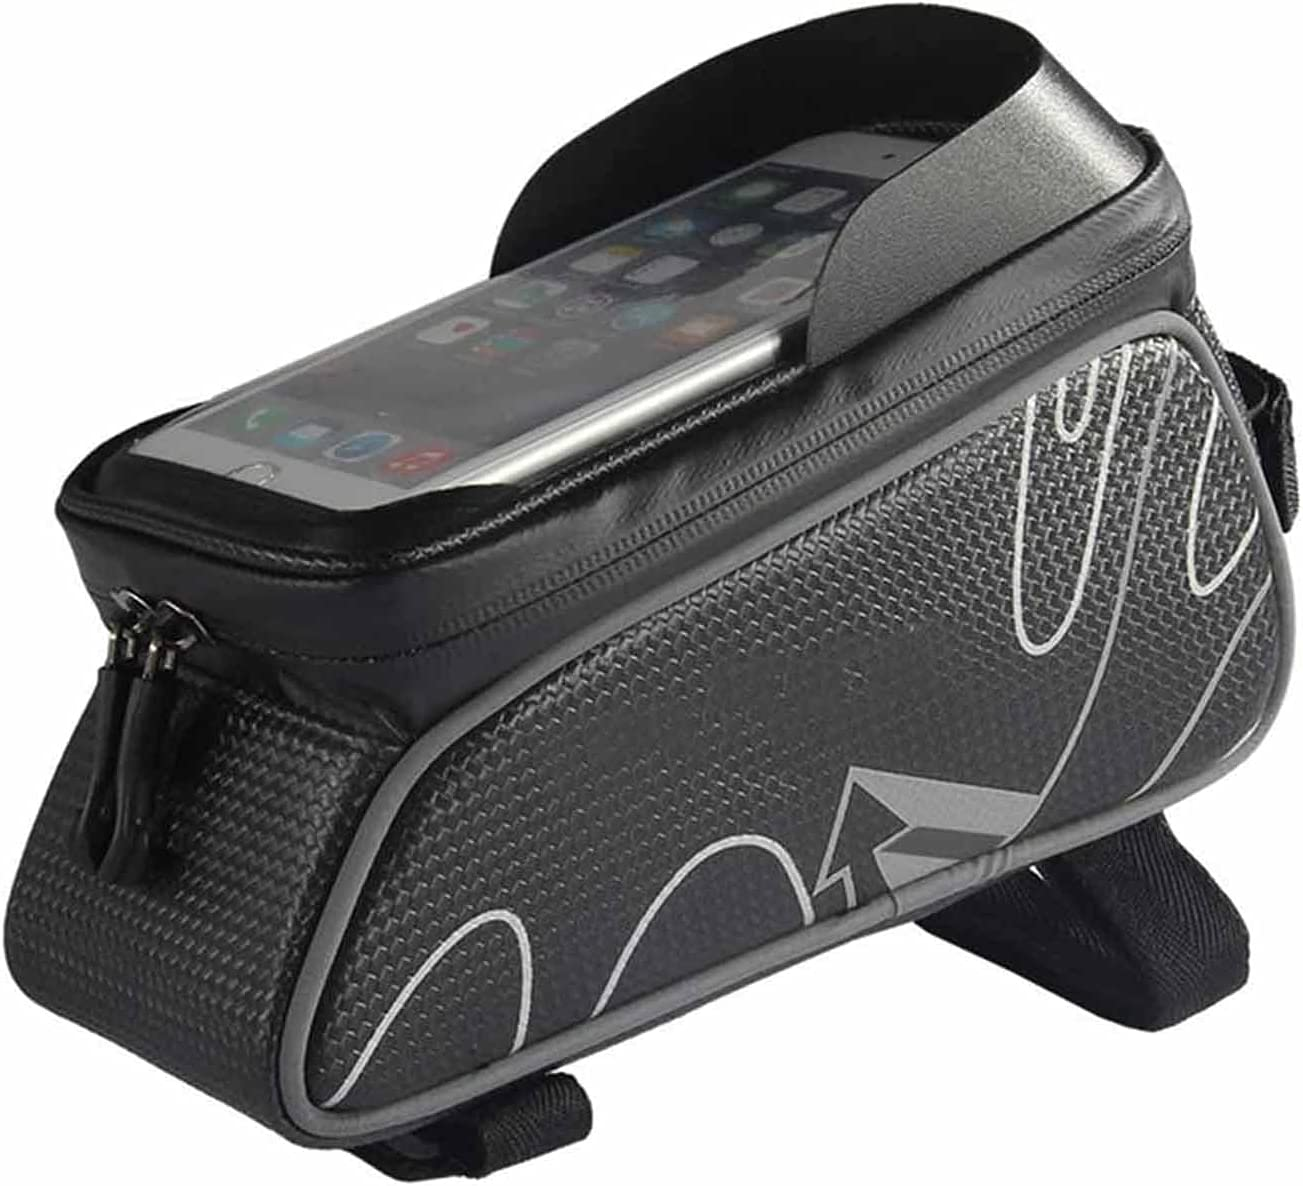 Linckry Bike Outlet SALE Front Storage Bombing new work Bag Top Tube Cycling Phone Frame